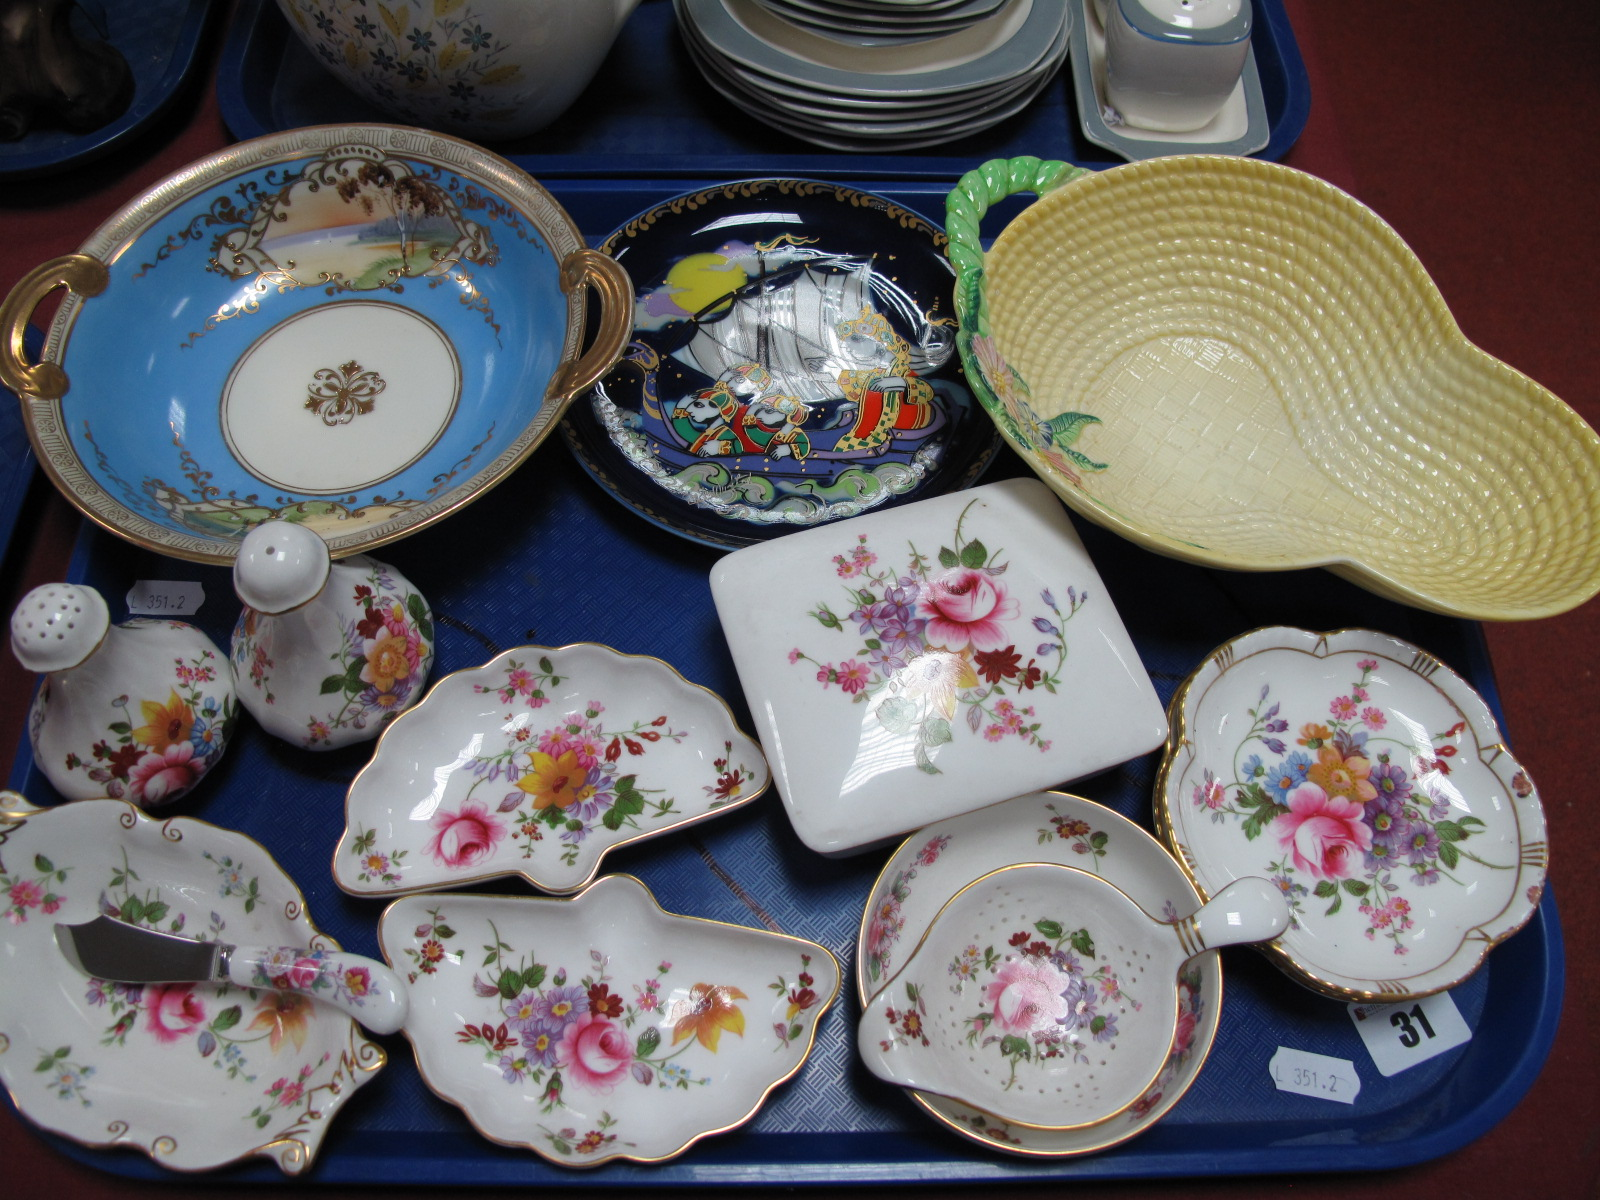 Lot 31 - Carlton Ware Pottery Basket, Rosenthal Bjorn Wiinblad 'Sinbad the Sailor' plate, Royal Crown Derby